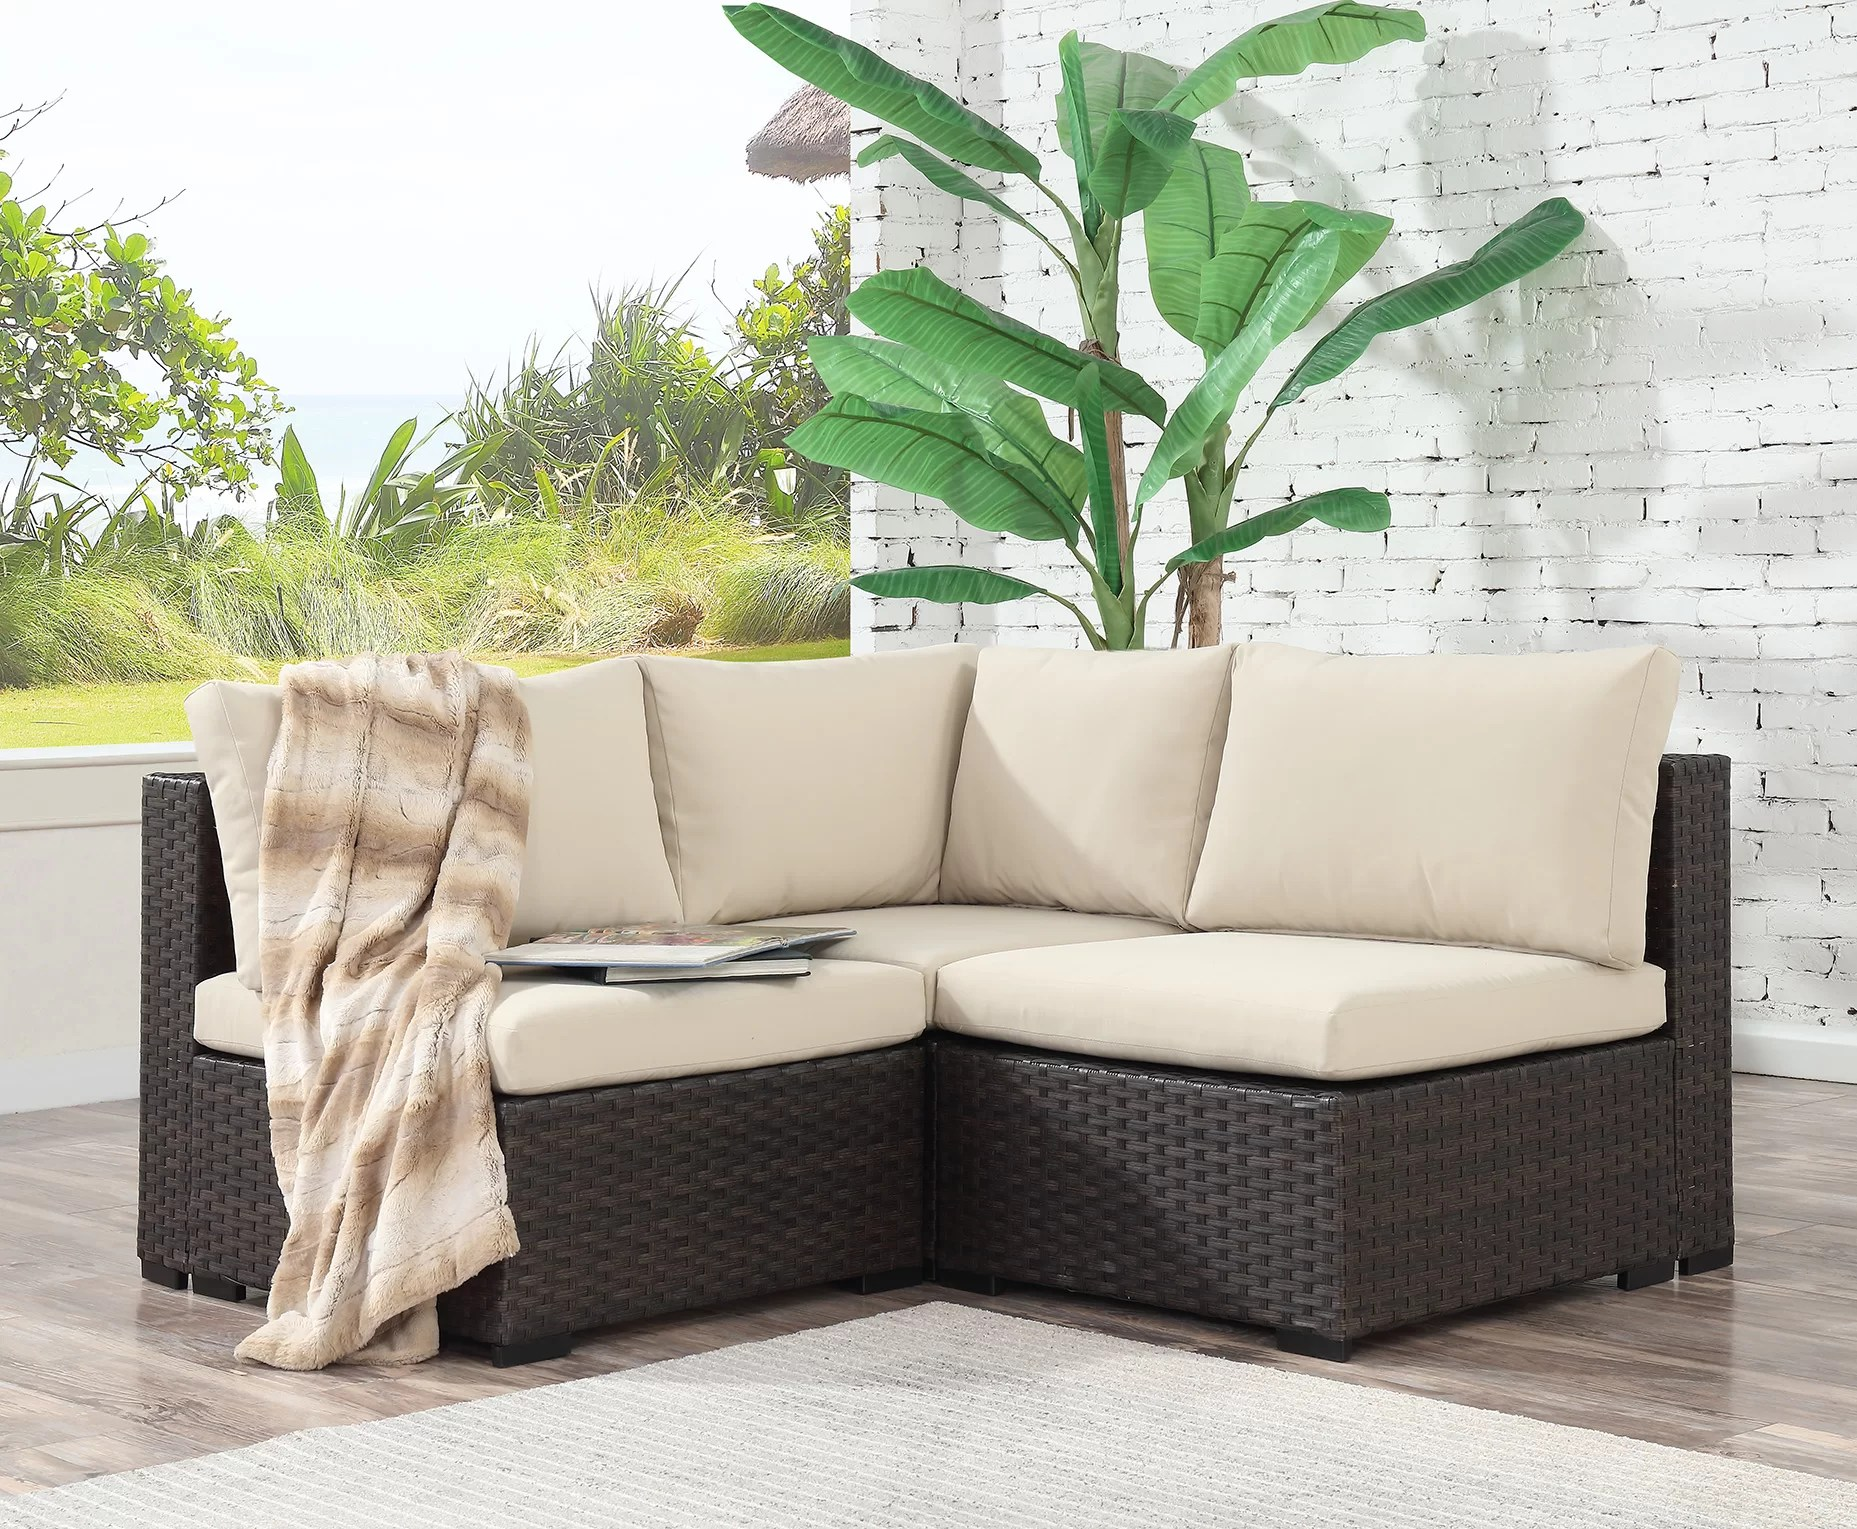 Rattan 3 Piece Sofa Holliston 3 Piece Rattan Sectional Seating Group With Cushions